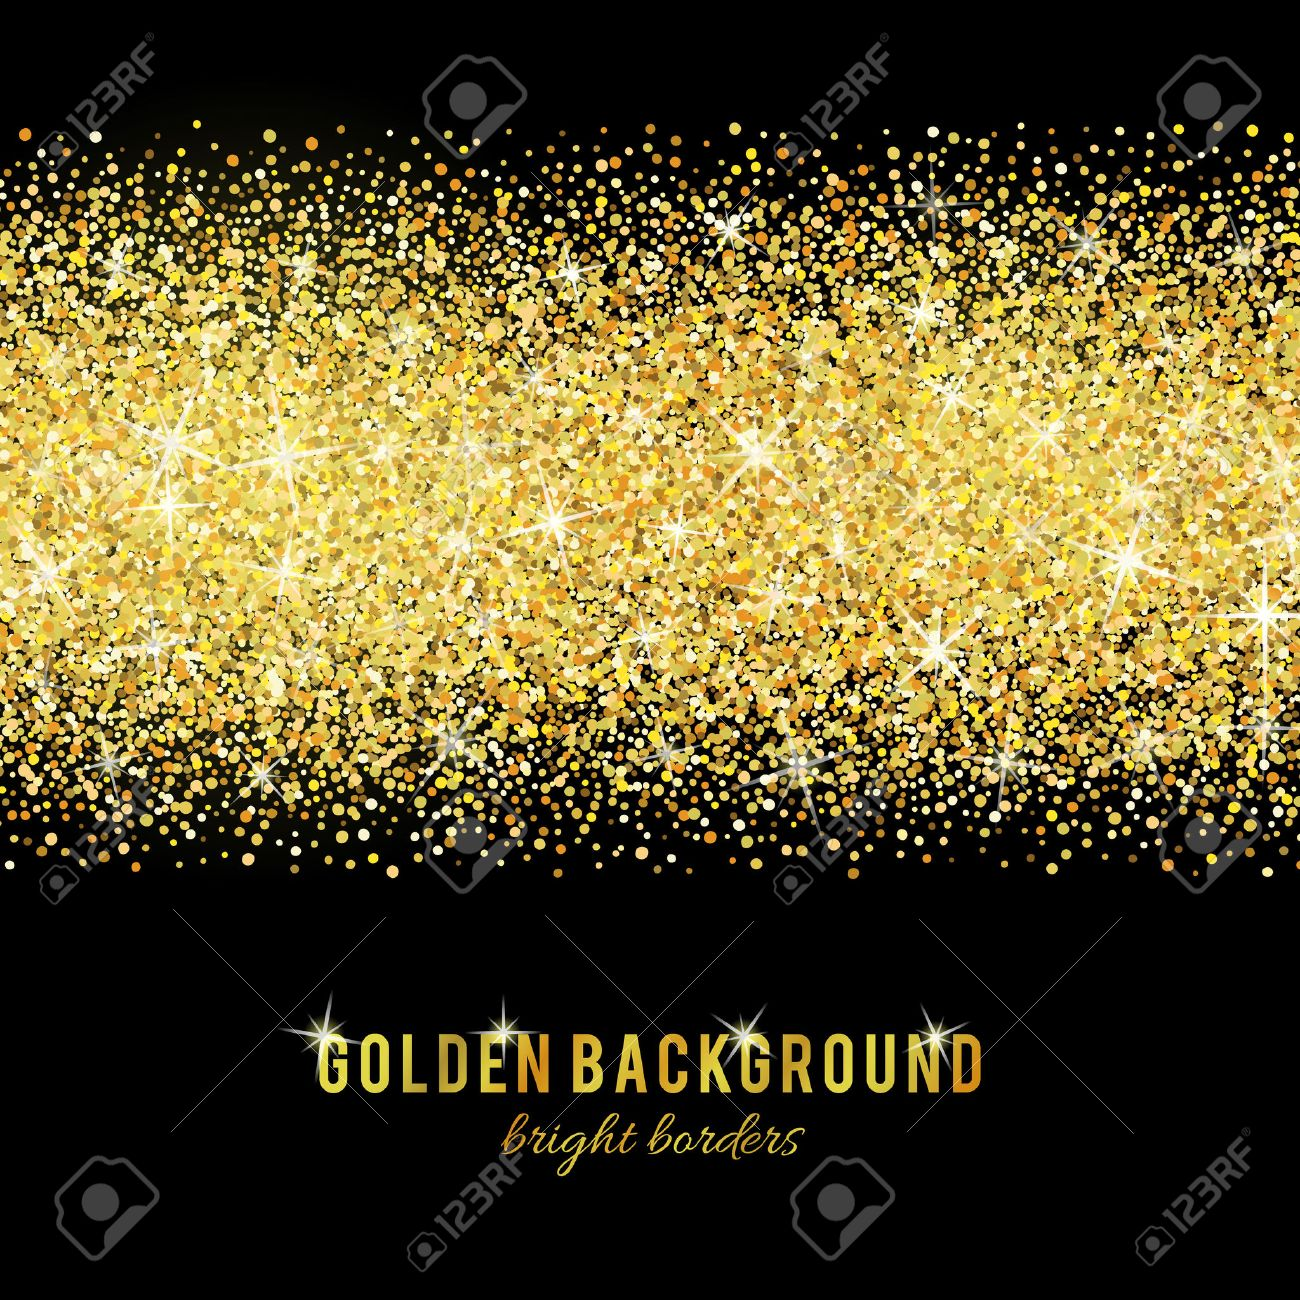 Gold glitter texture isolated on black background. - 53524100